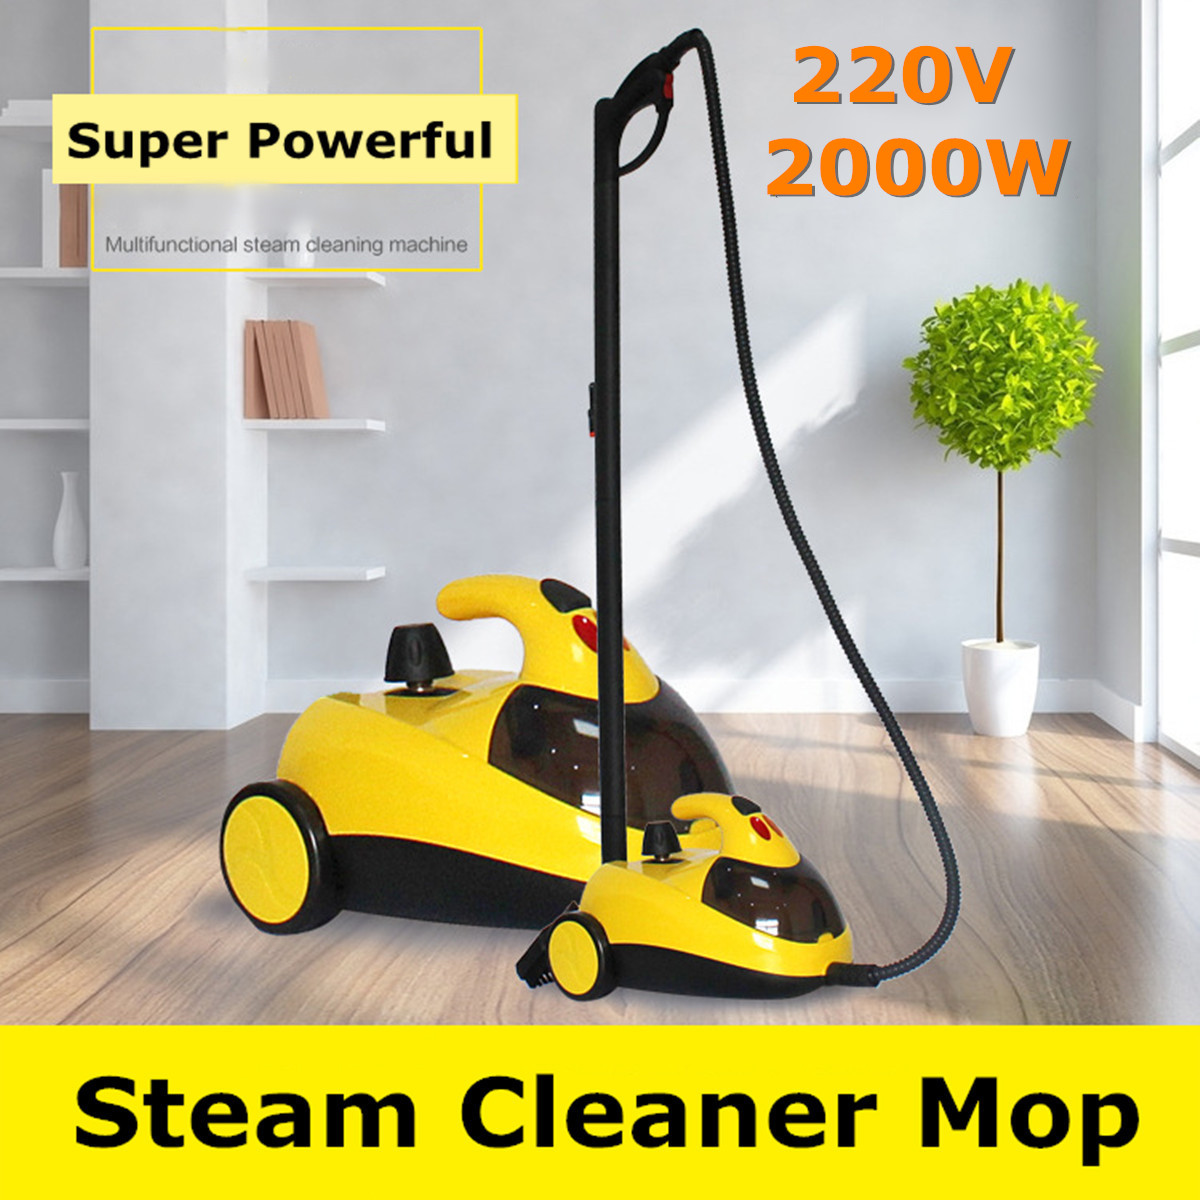 Floor Carpet Cleaner 13in1 AU220V 1.5L4.0 2000W Bar High Pressure Steam Washer Cleaning Machine 360 Wheel for Clean Bathroom Car